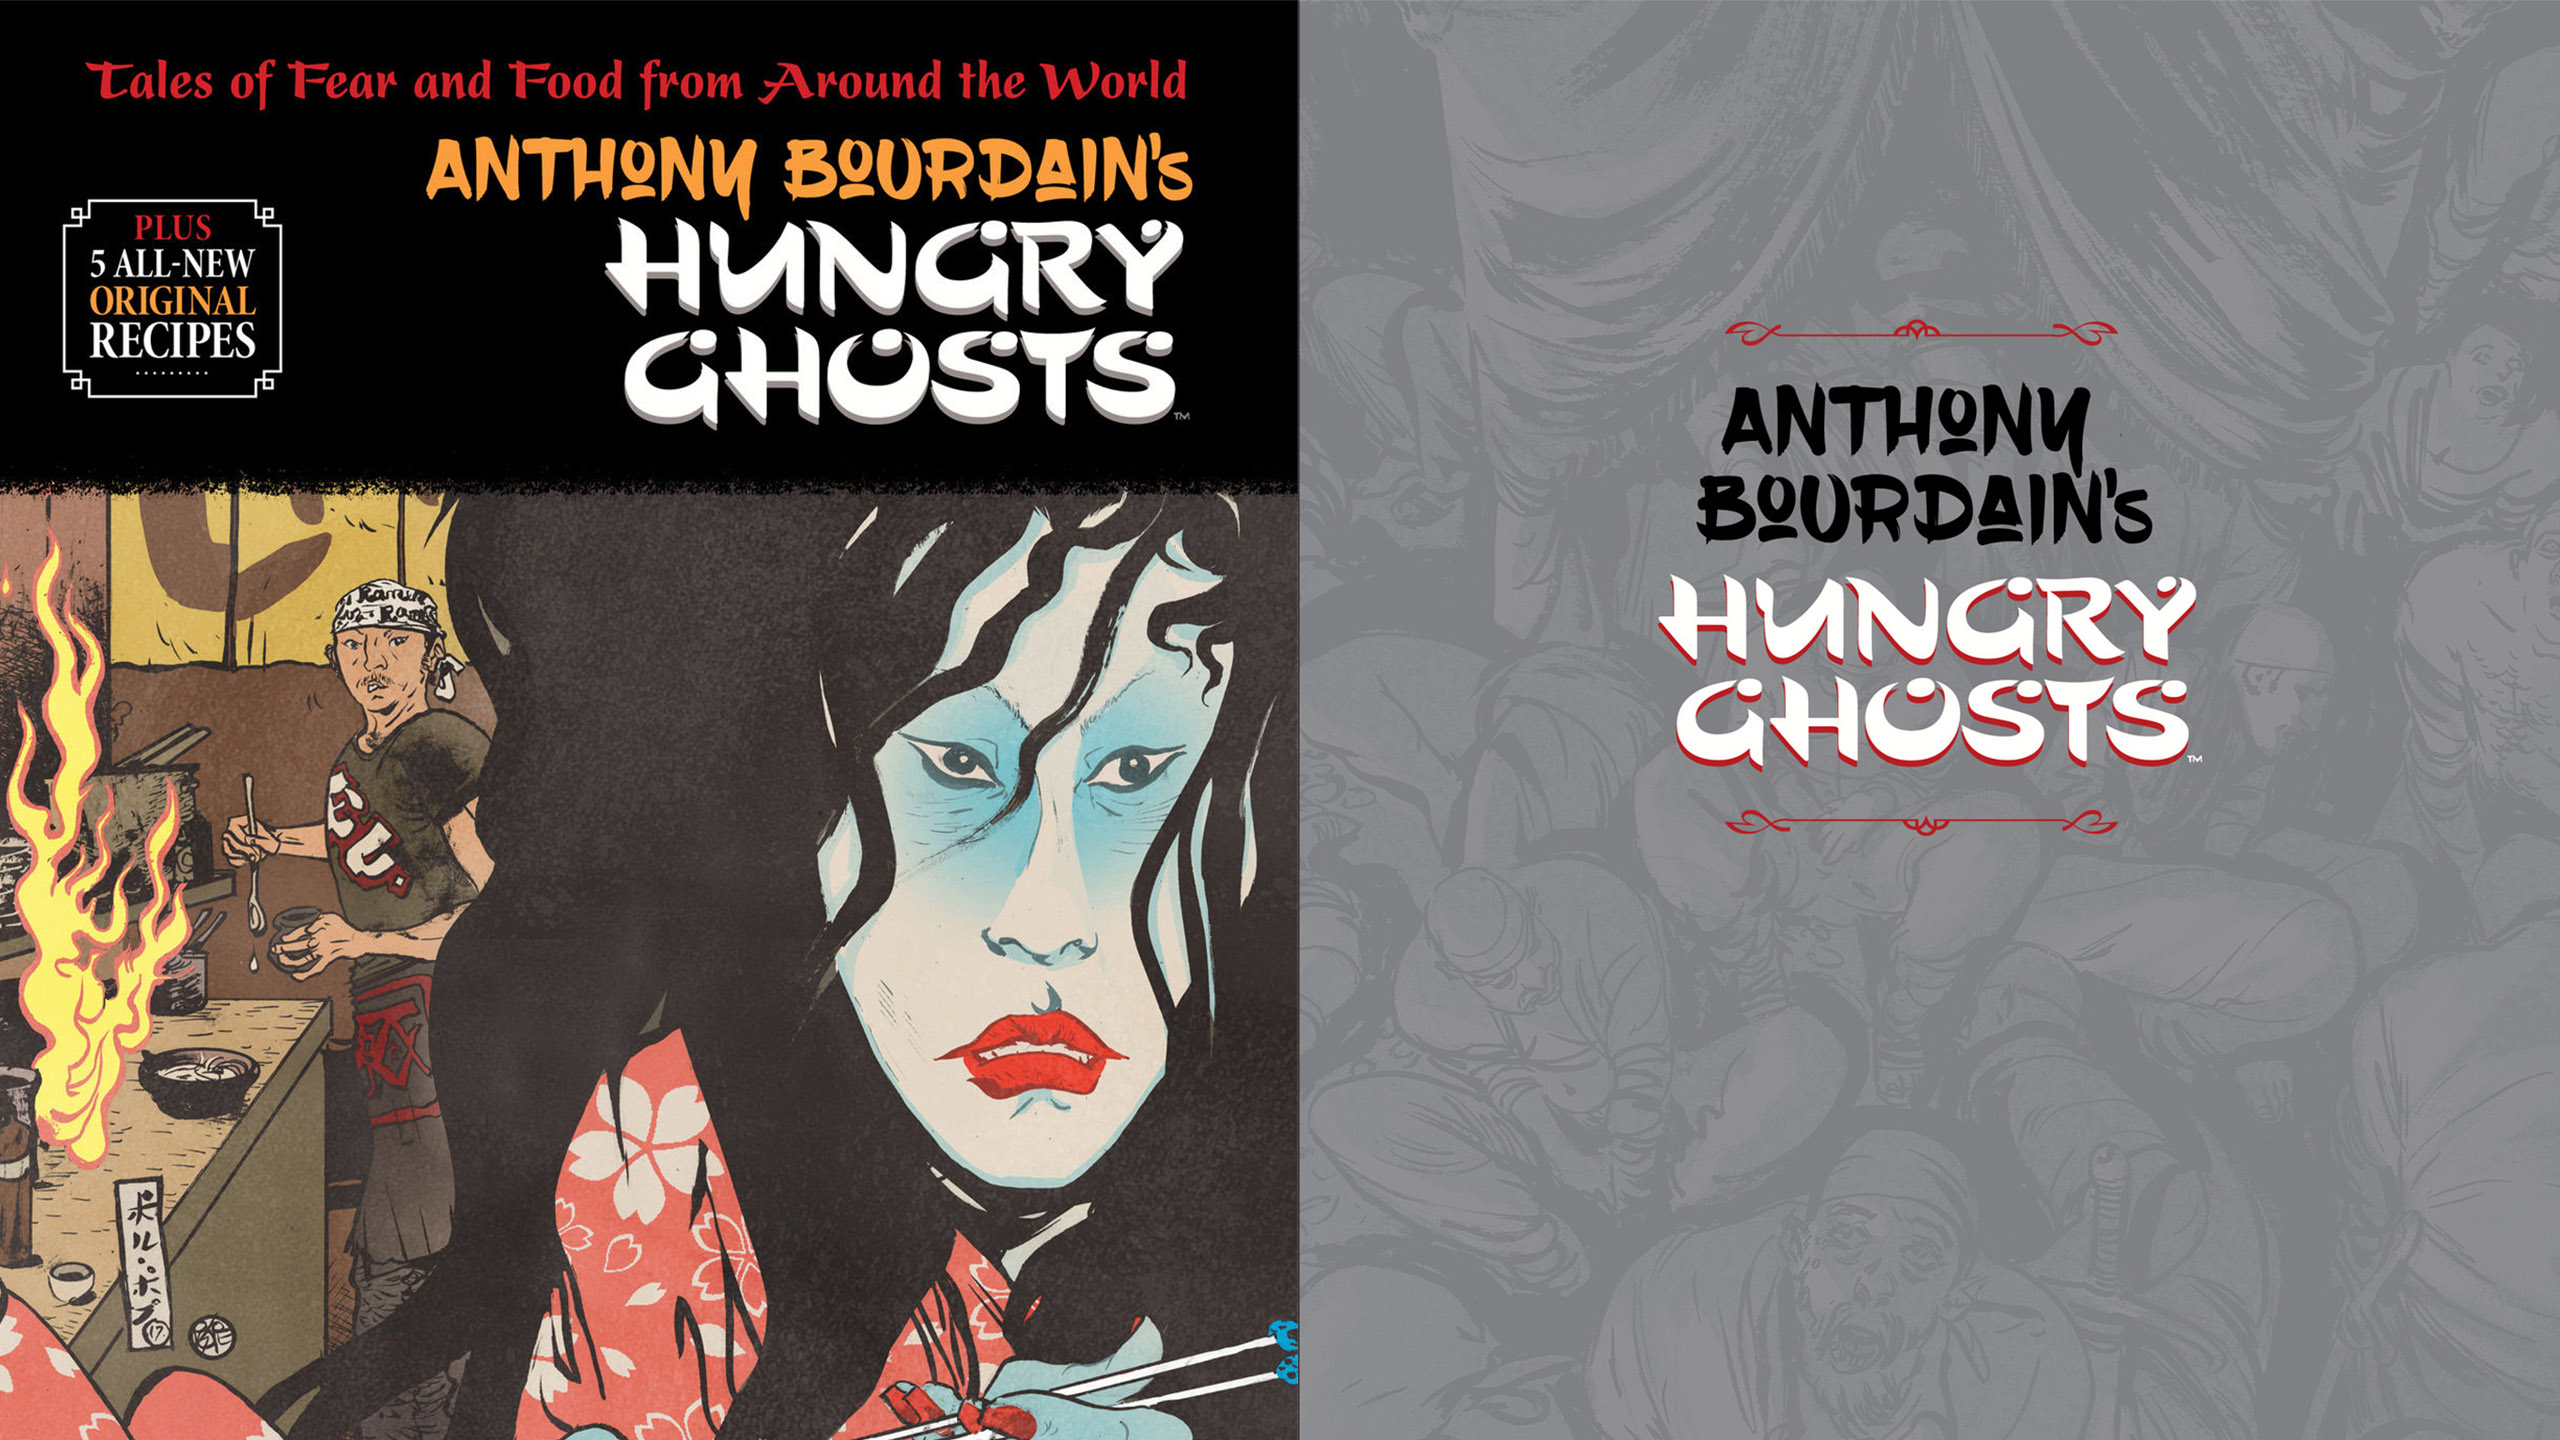 Anthony Bourdain, novela, novela gráfica, hungry ghosts